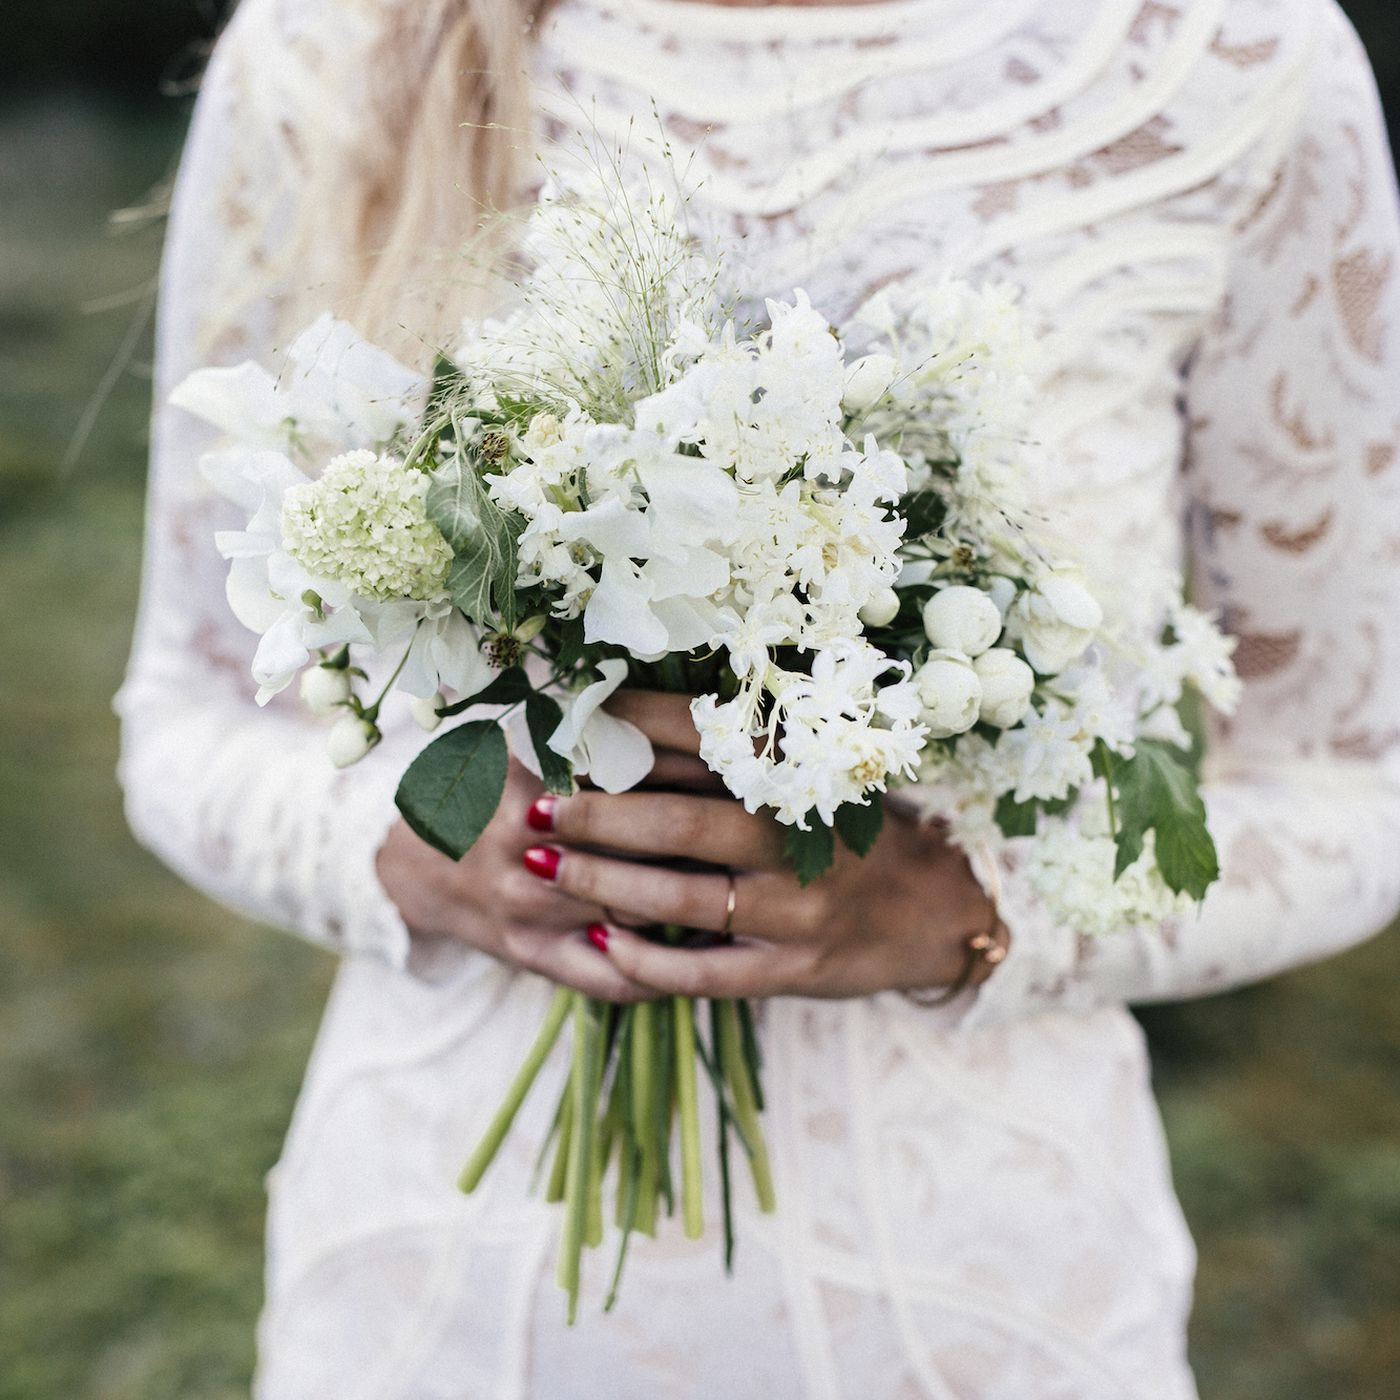 Where To Buy A Modest Wedding Dress